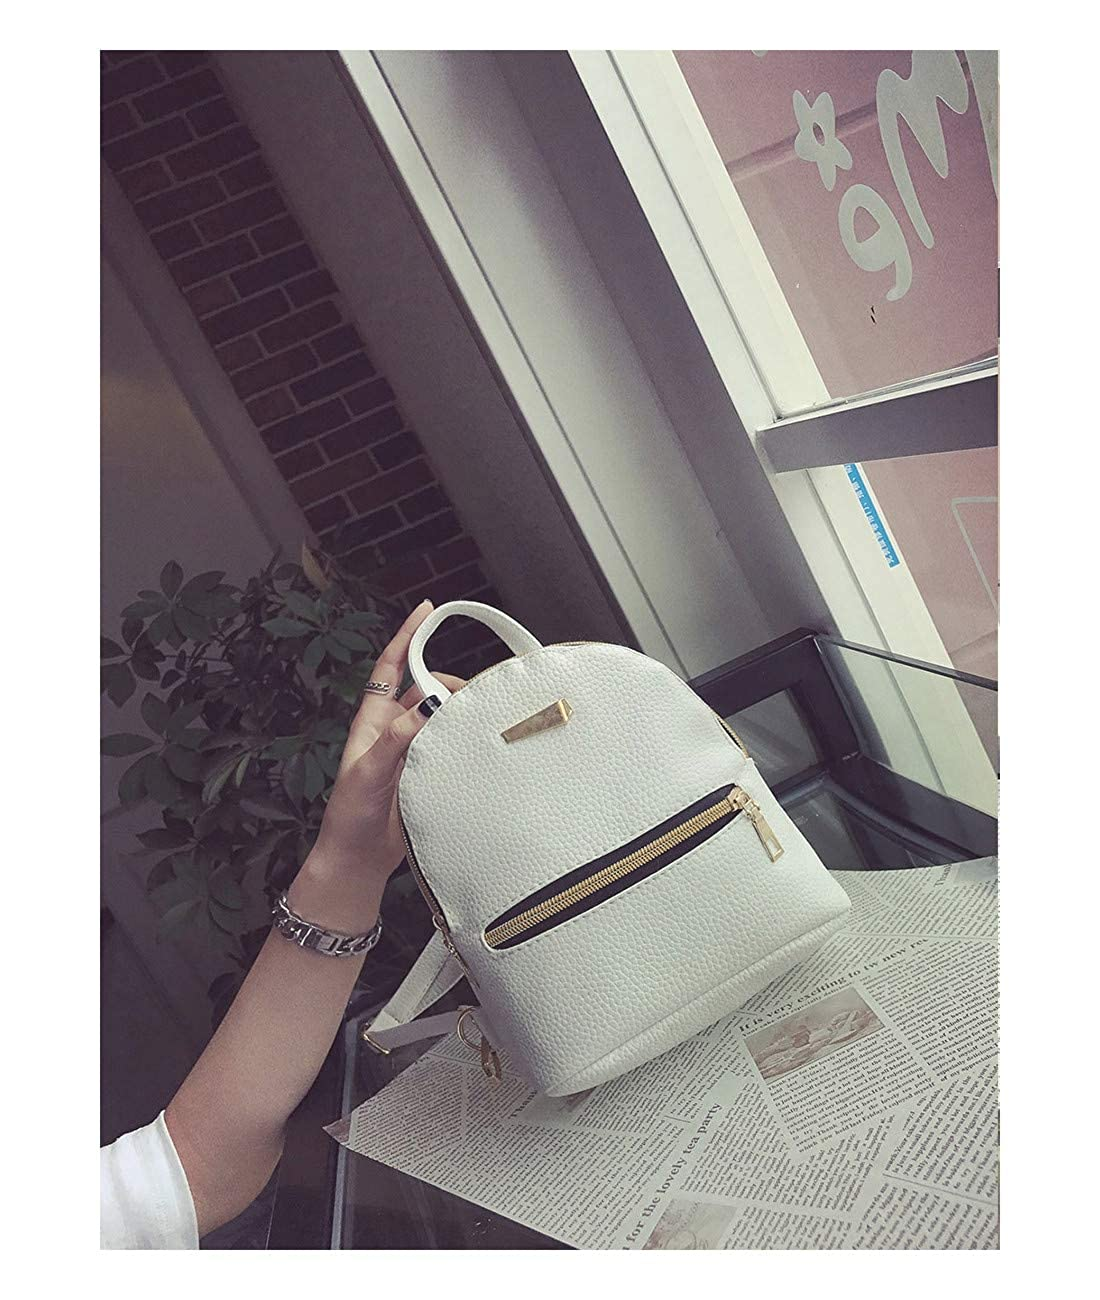 HARLAN Womens Backpack Candy Color Solid Preppy Chic Mini Bag